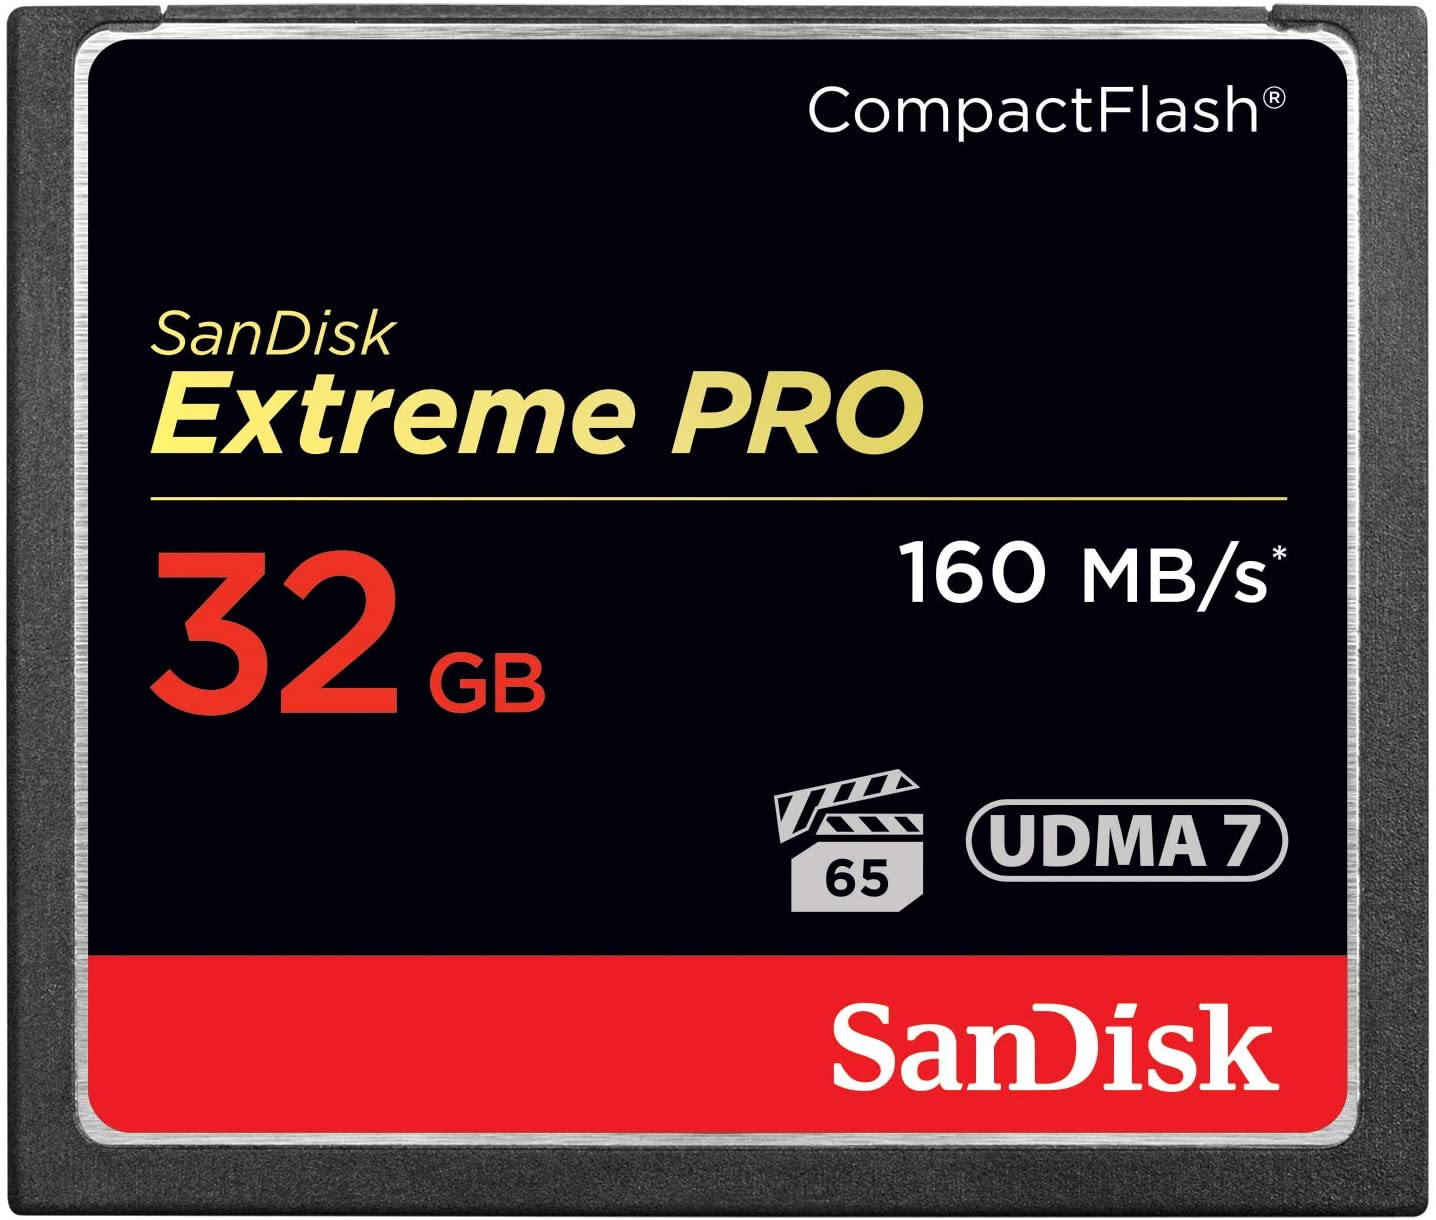 This is a photo of a 32gb microSD card from Sandisk